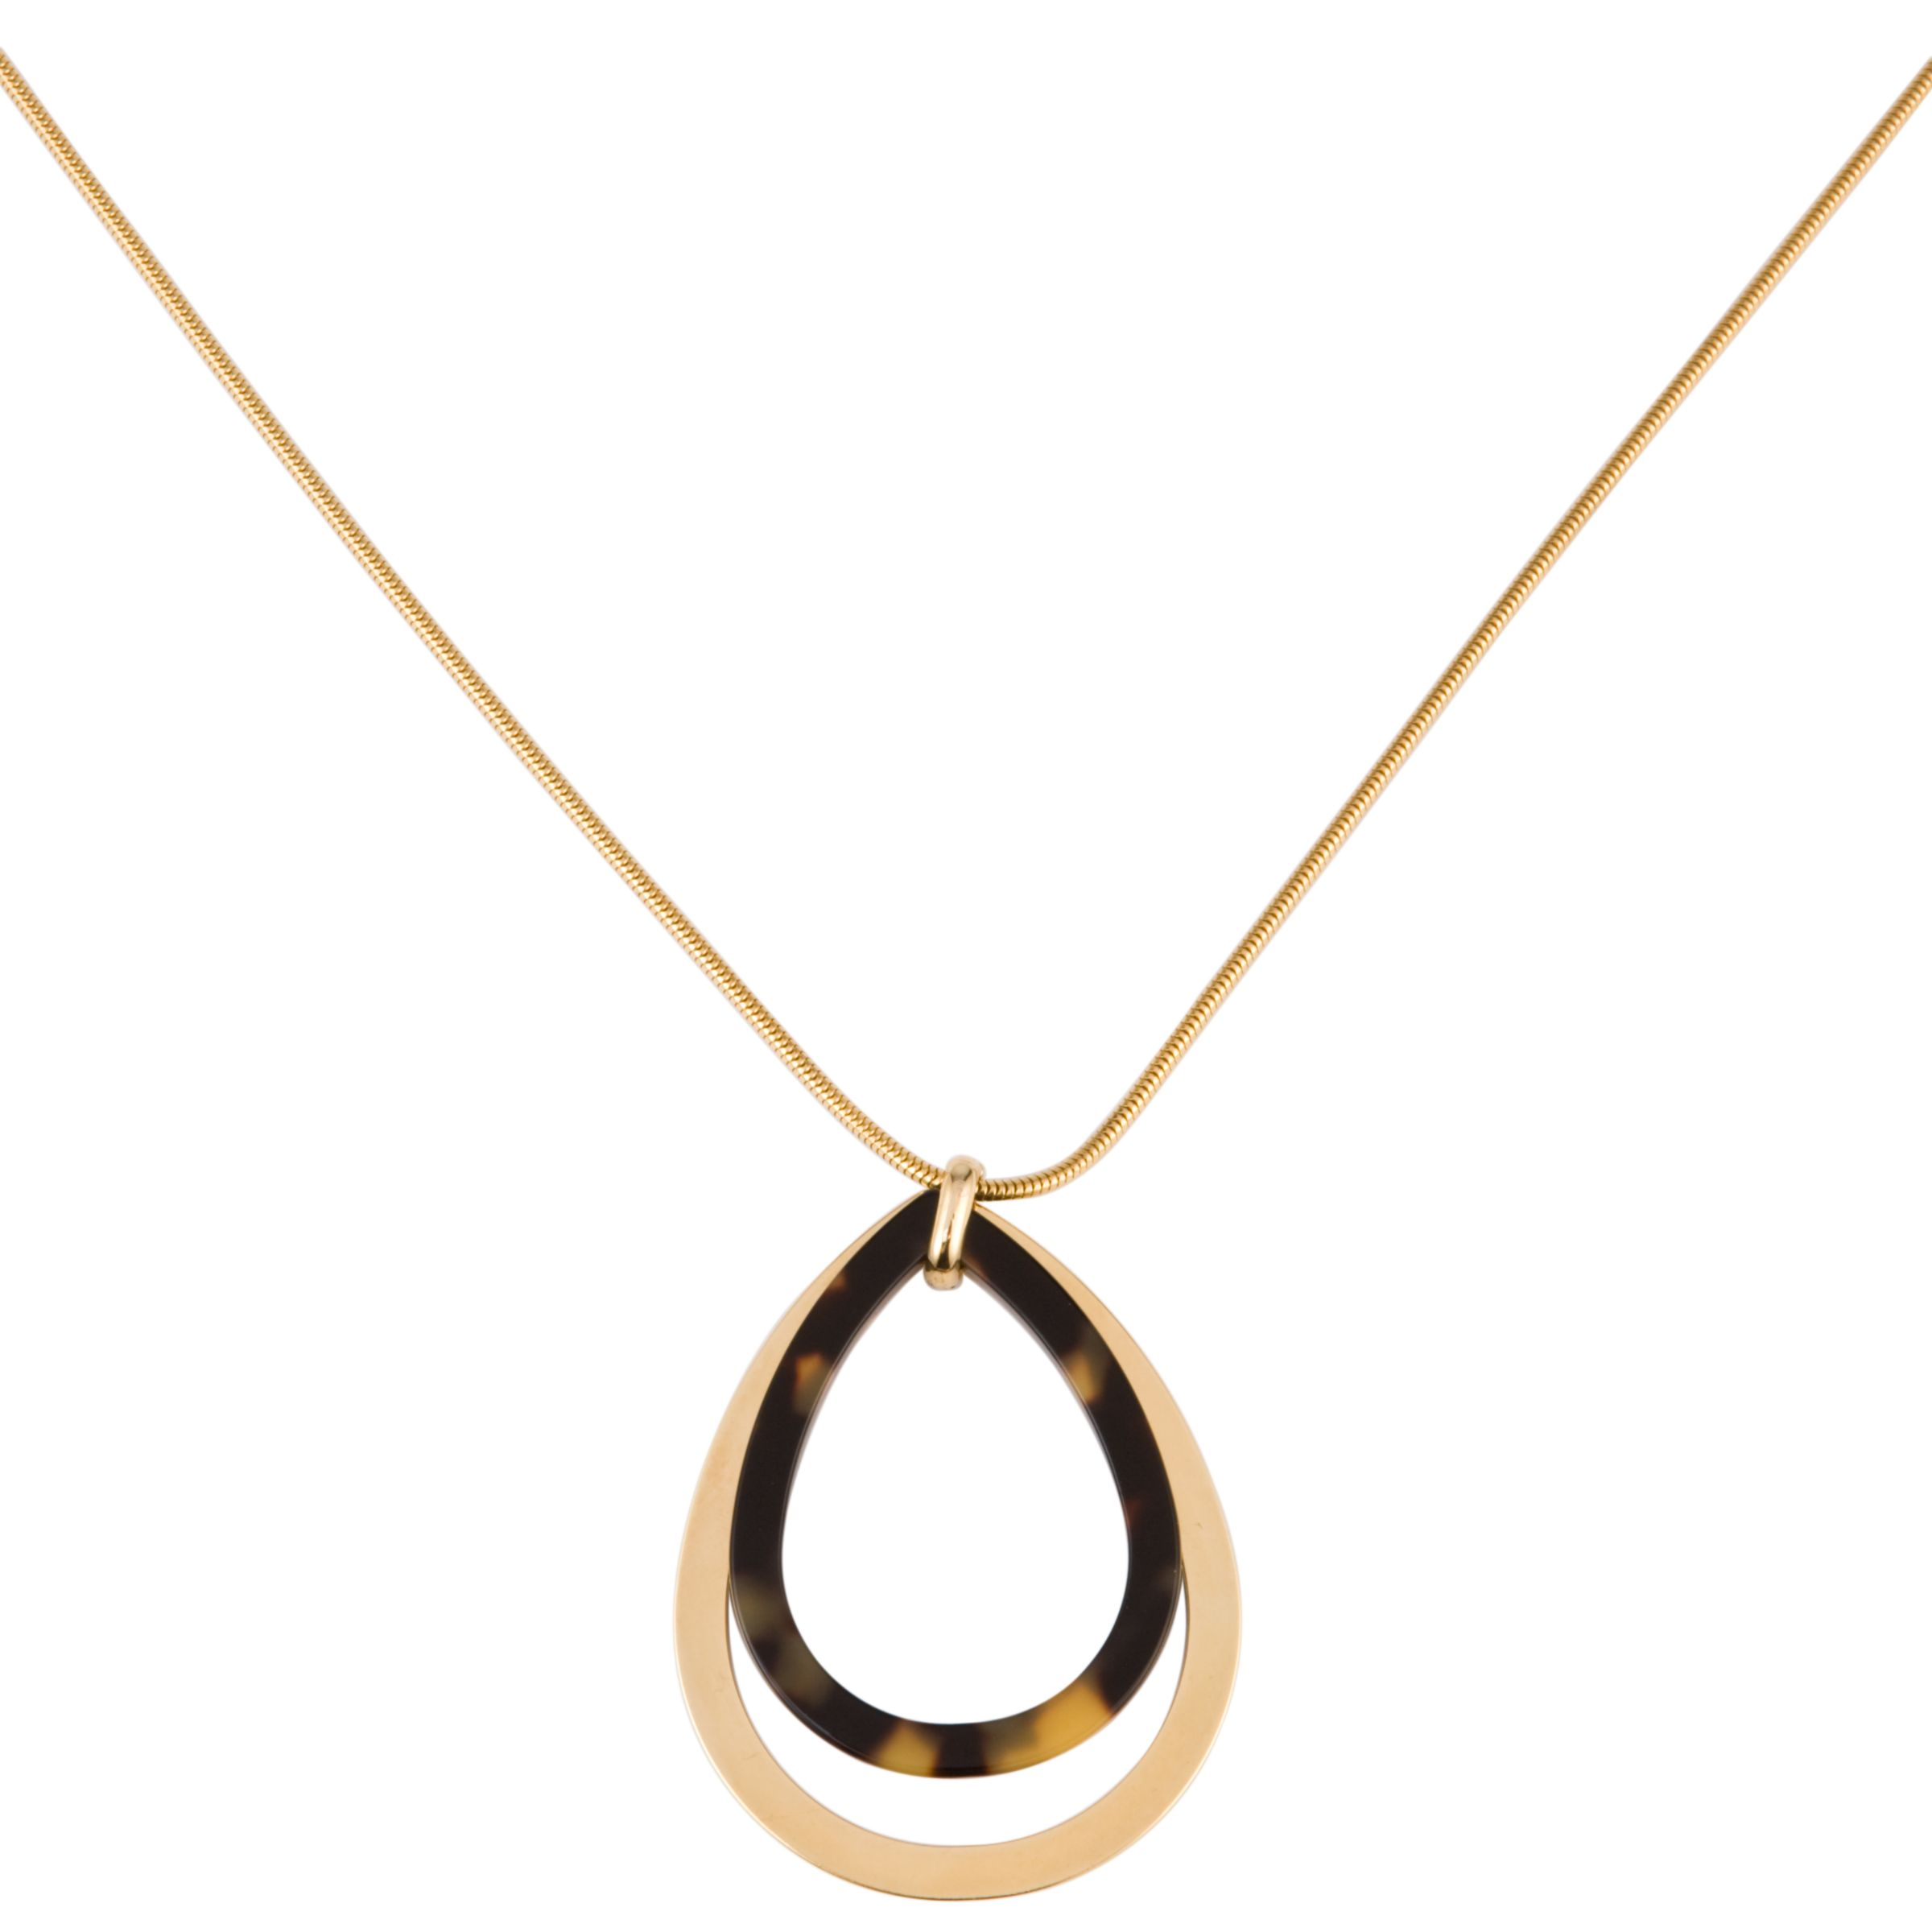 COLLECTION, John Lewis Women Teardrop Pendant Necklace, Tortoiseshell/Gold